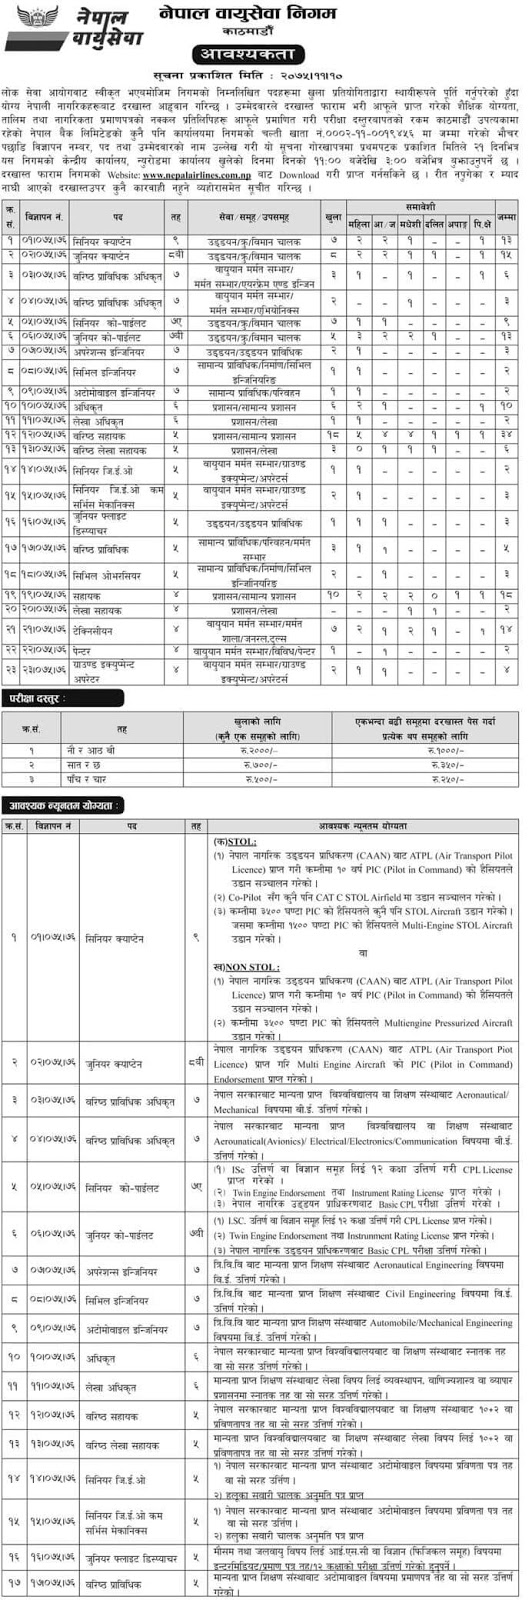 Nepal Airlines Corporation Vacancy1